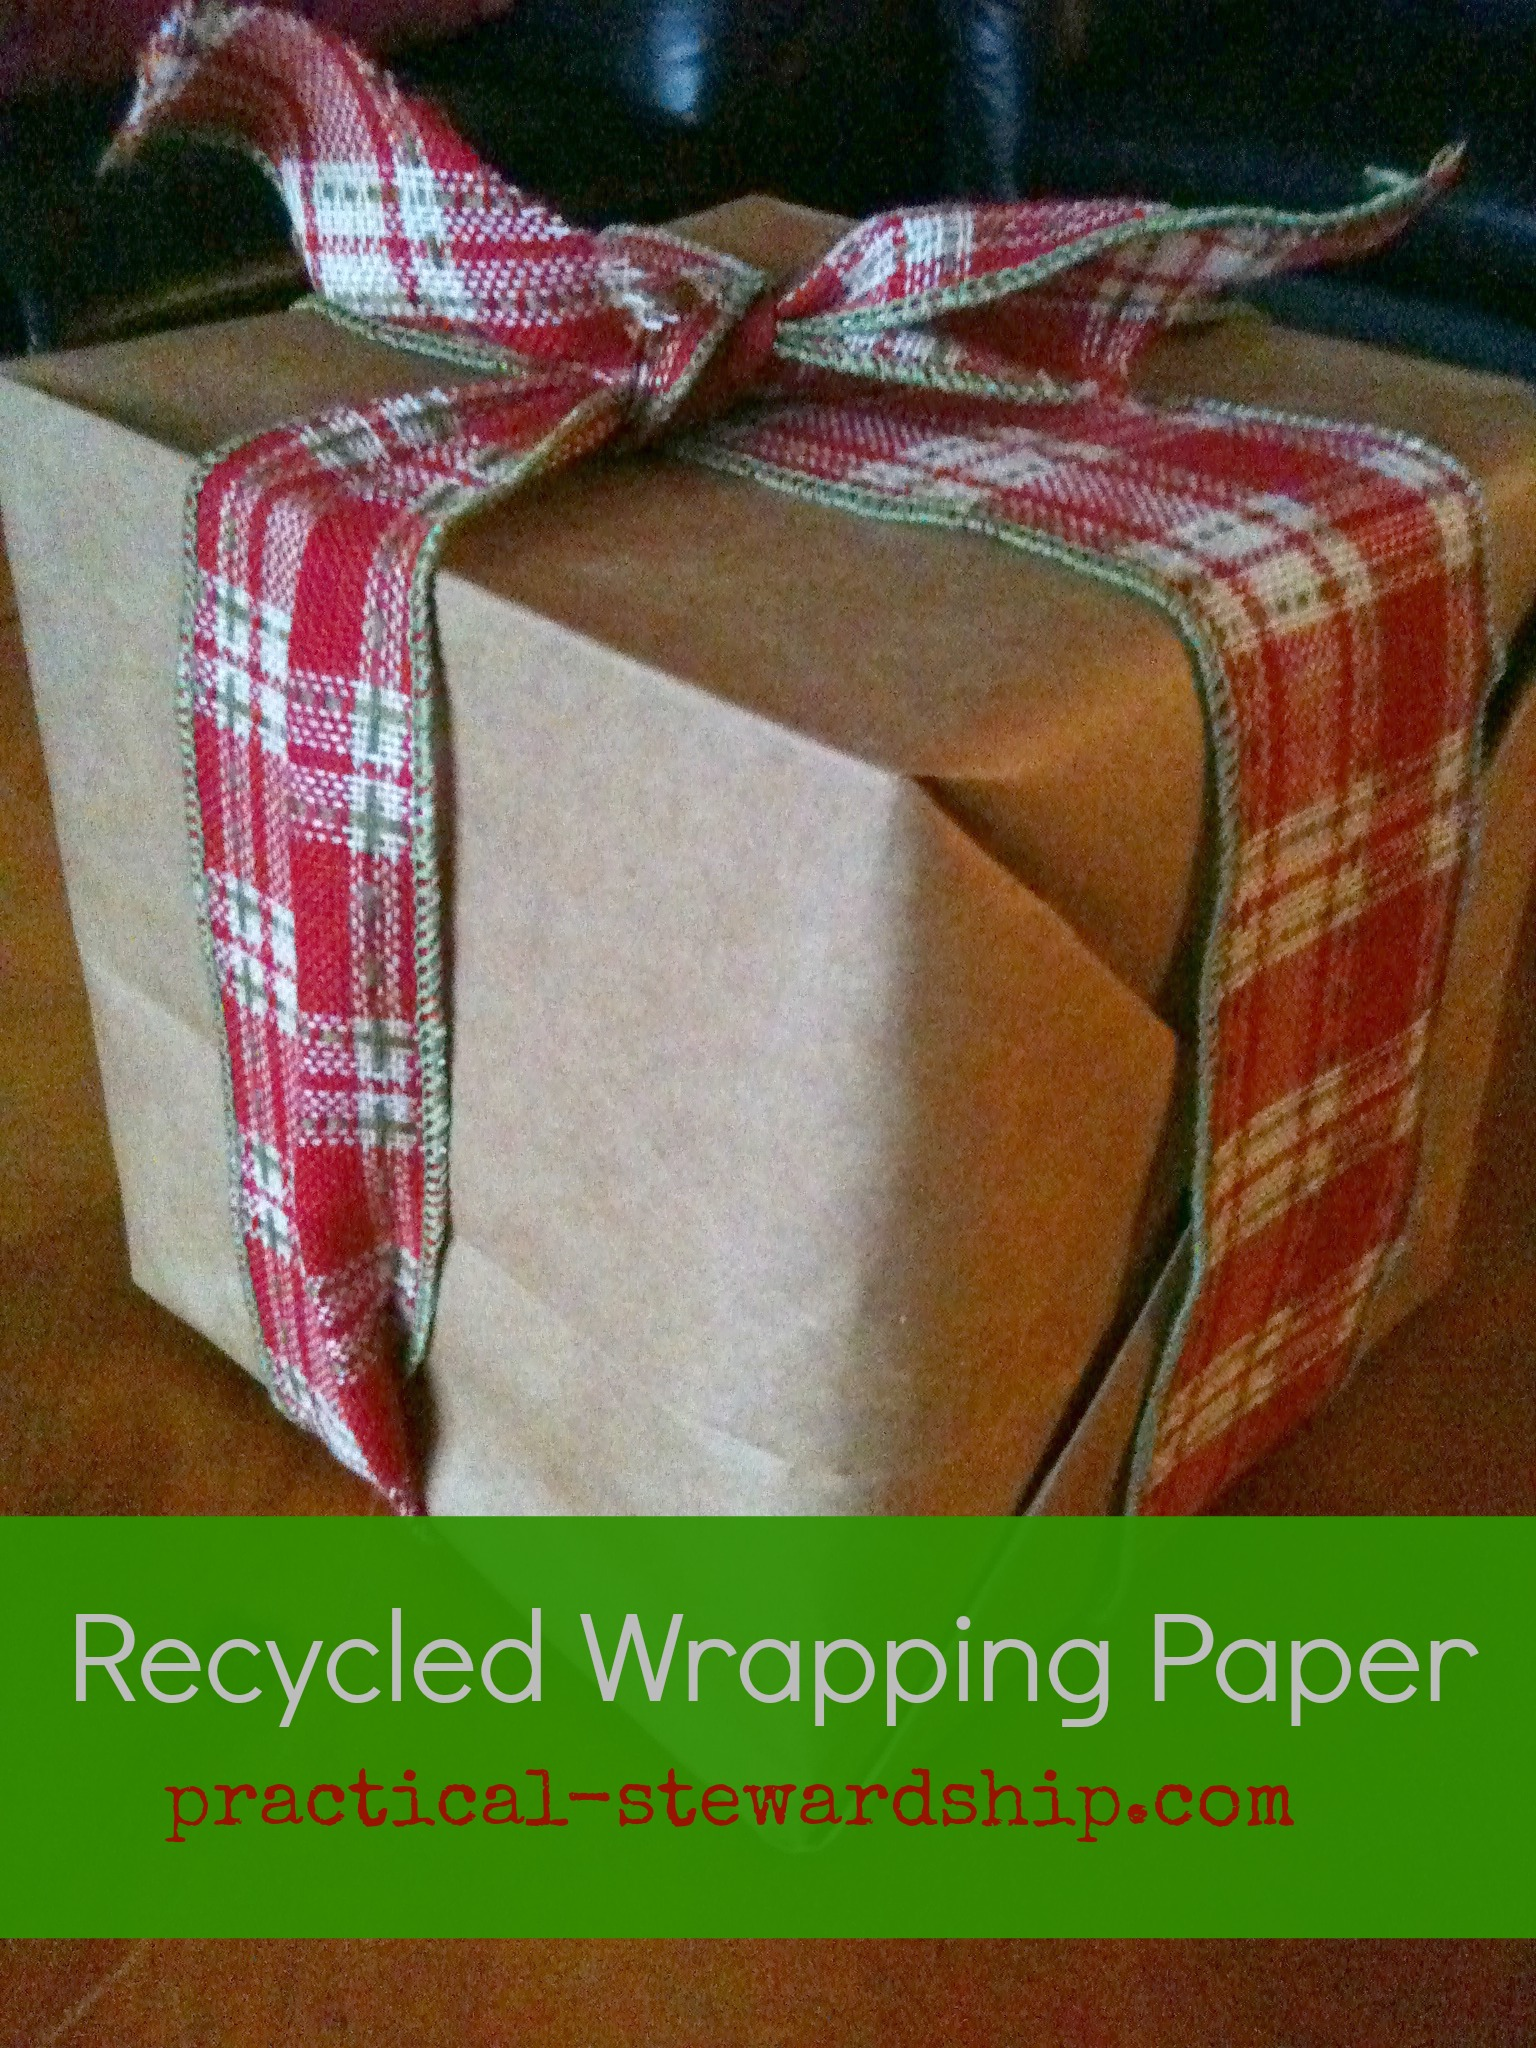 Recycling & Repurposing Part 2: Wrapping Paper